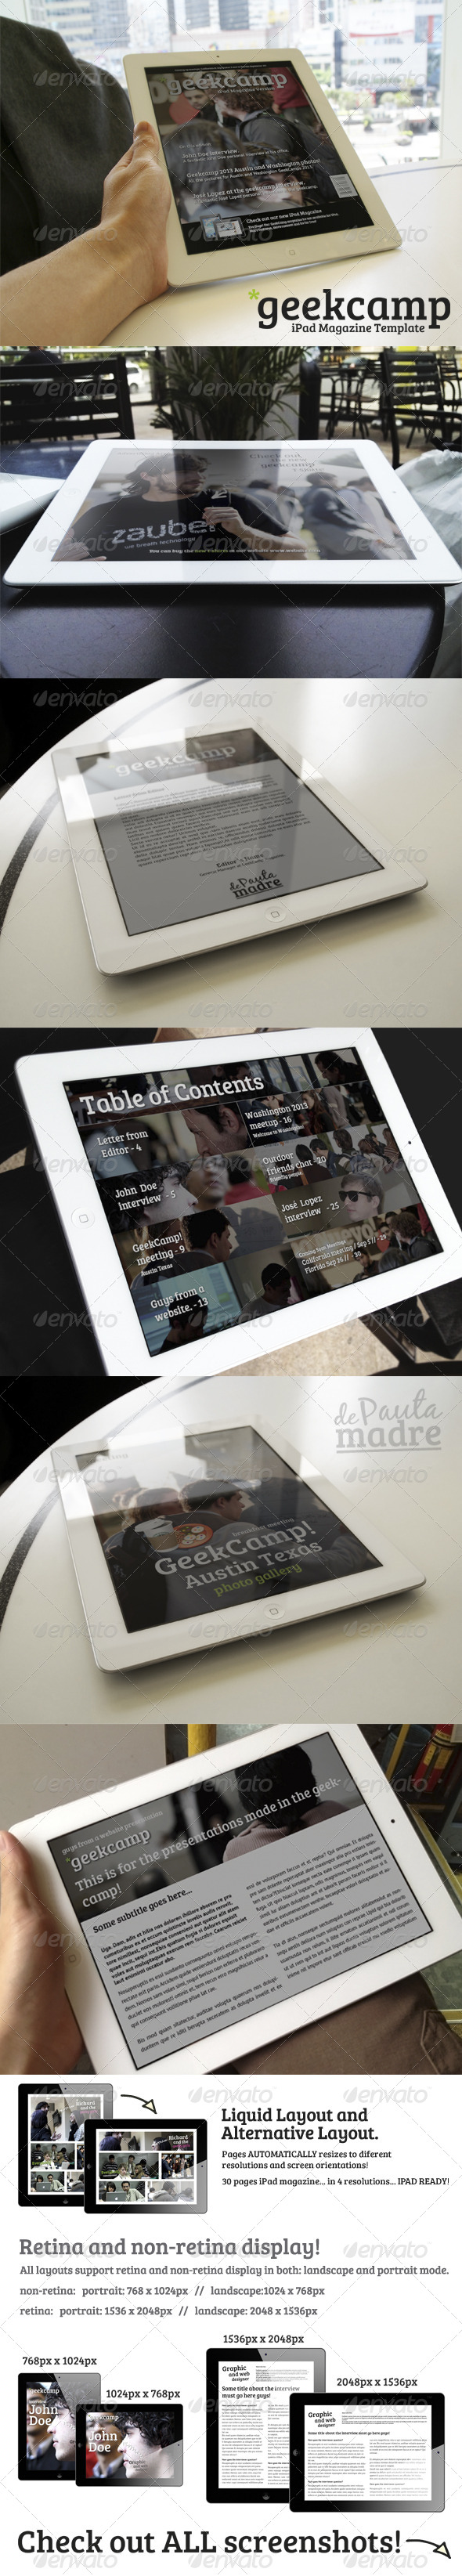 GraphicRiver Barcamp-Geekcamp iPad Magazine Template 4975528